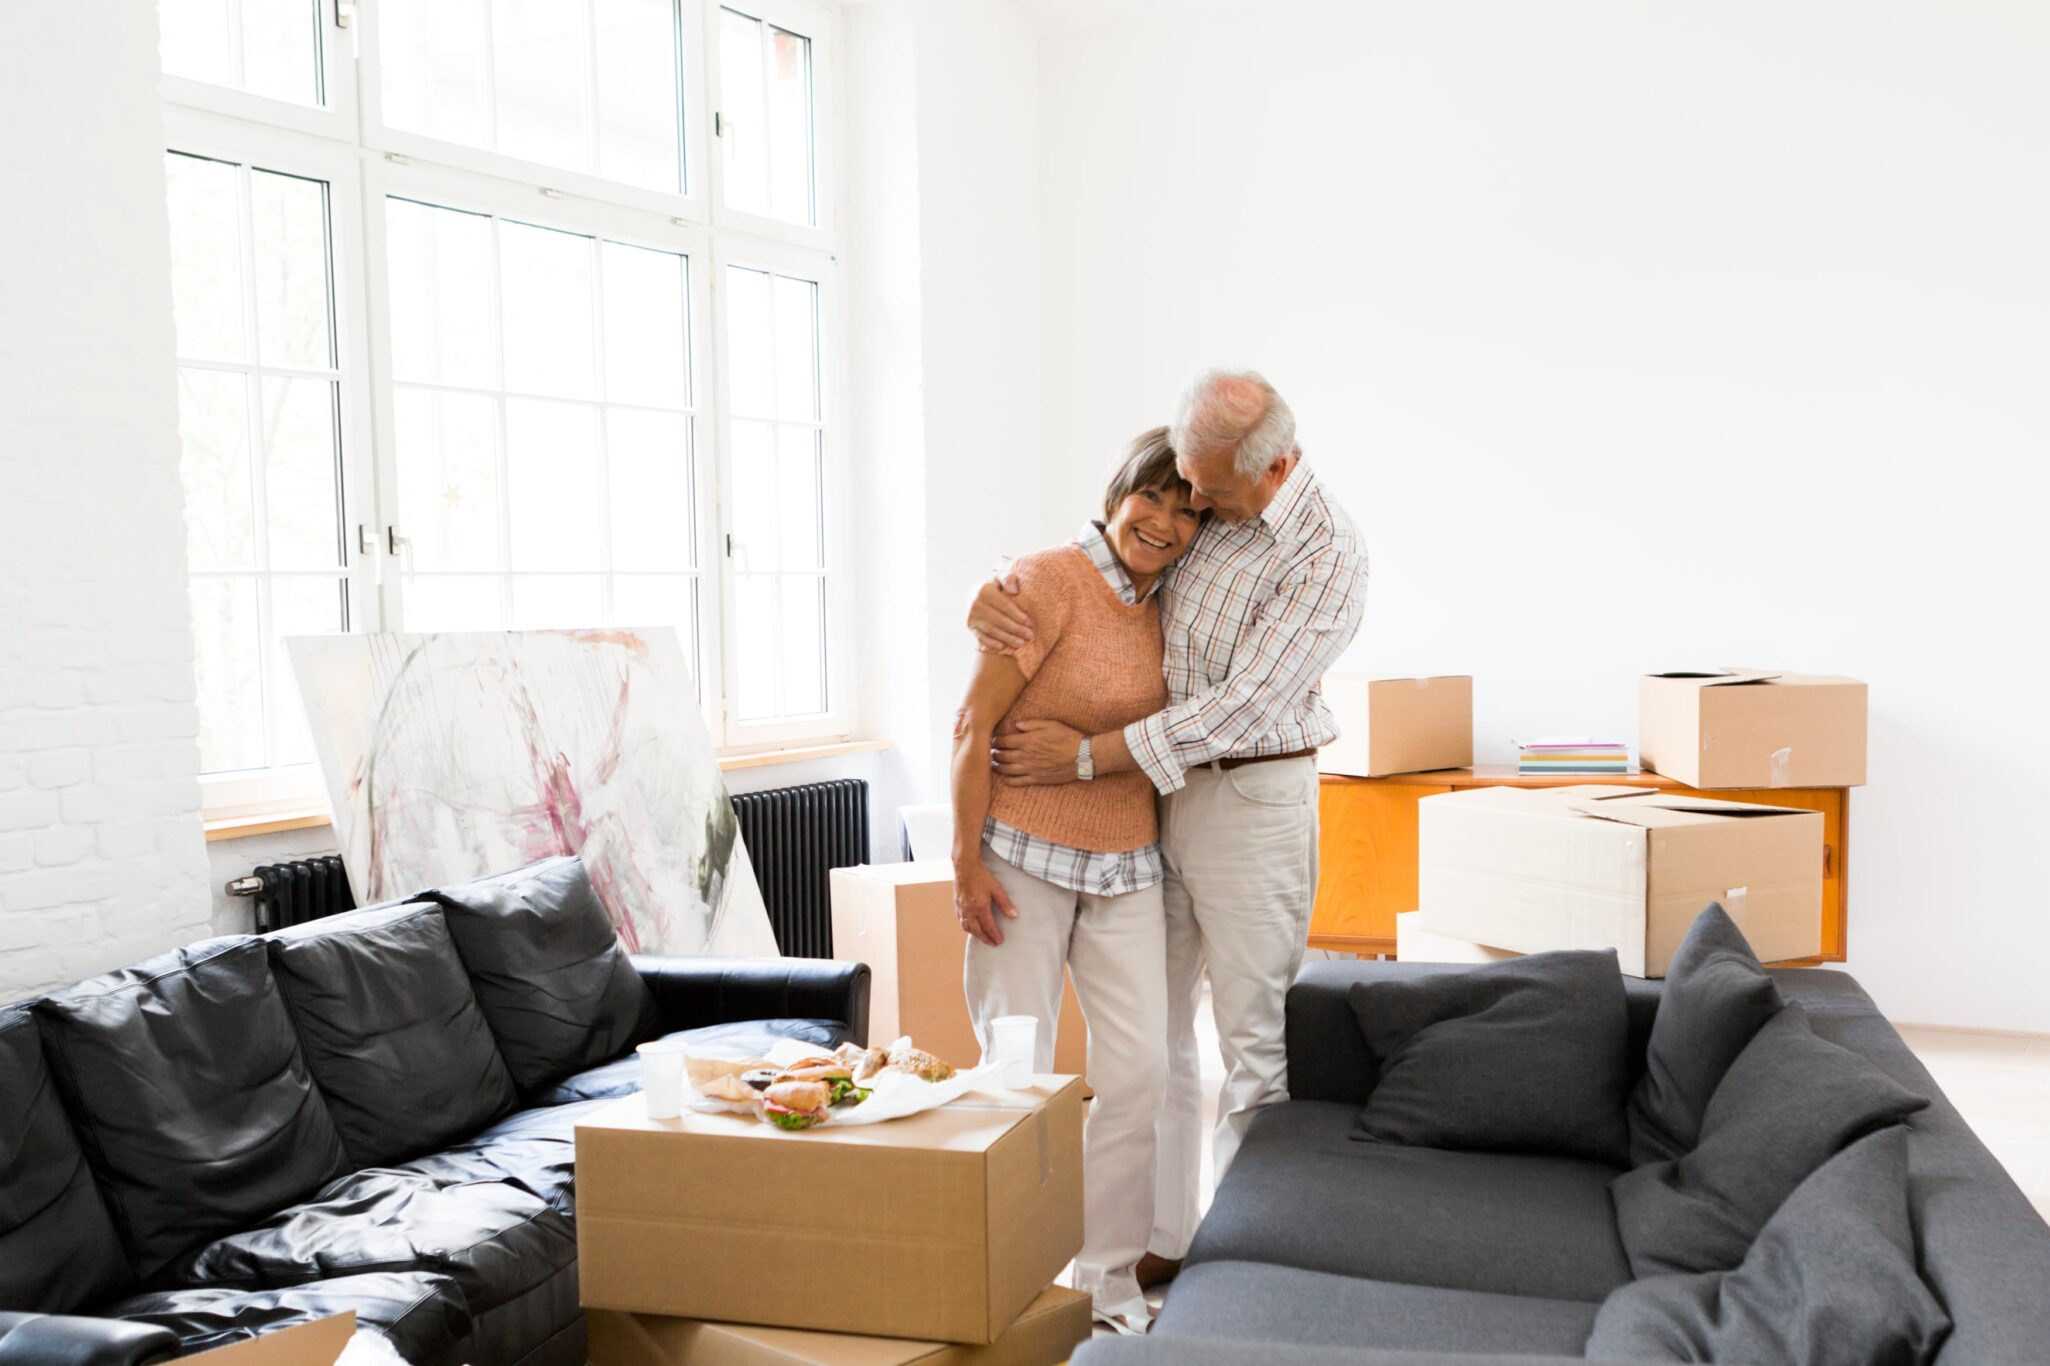 Older couple hugging and smiling in a room with moving boxes.